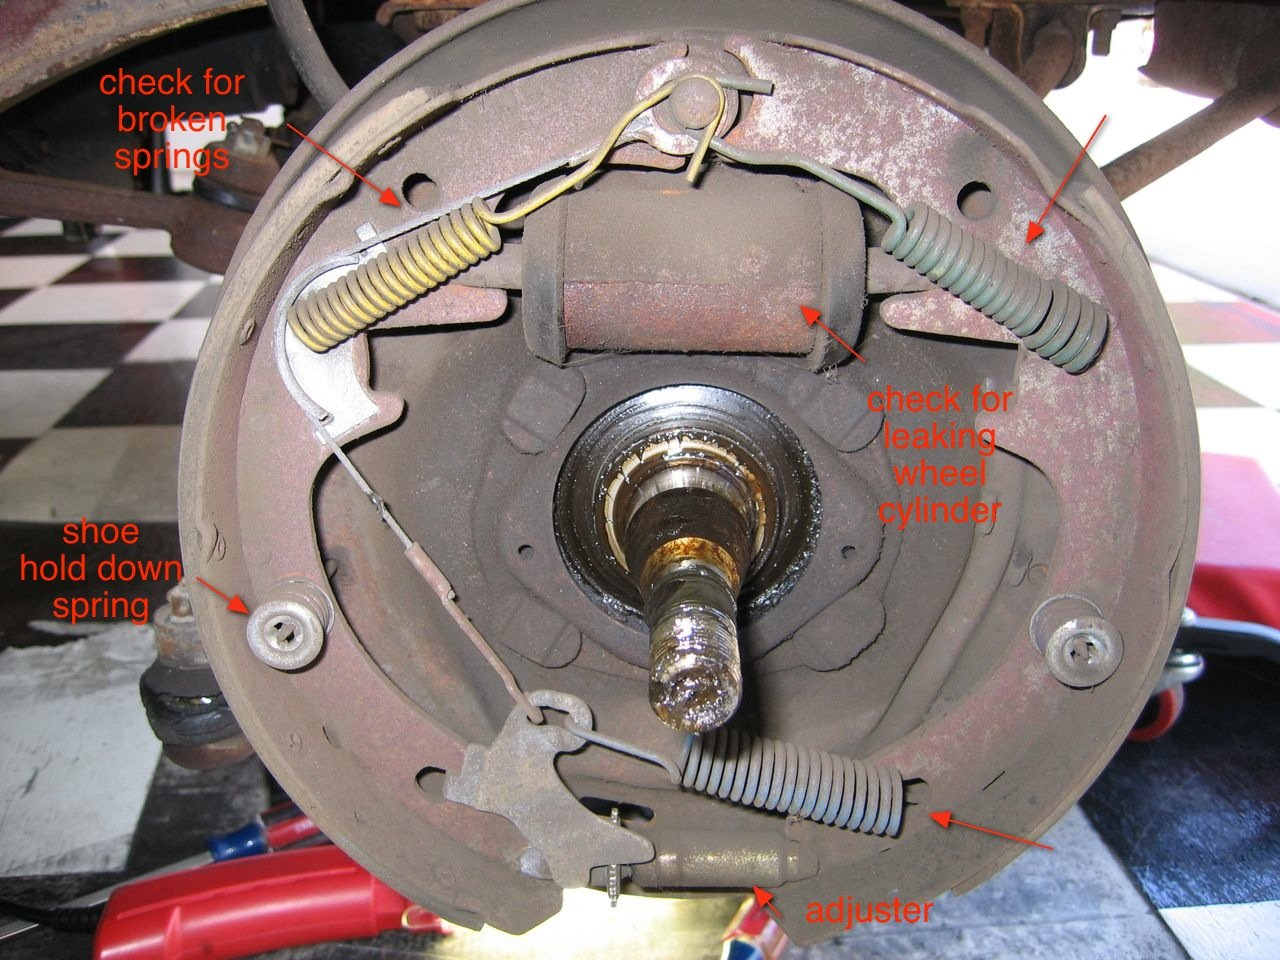 How Do You Bleed Brakes >> 1966 Mustang-Step hard on brakes = pull to left - Ford Mustang Forum